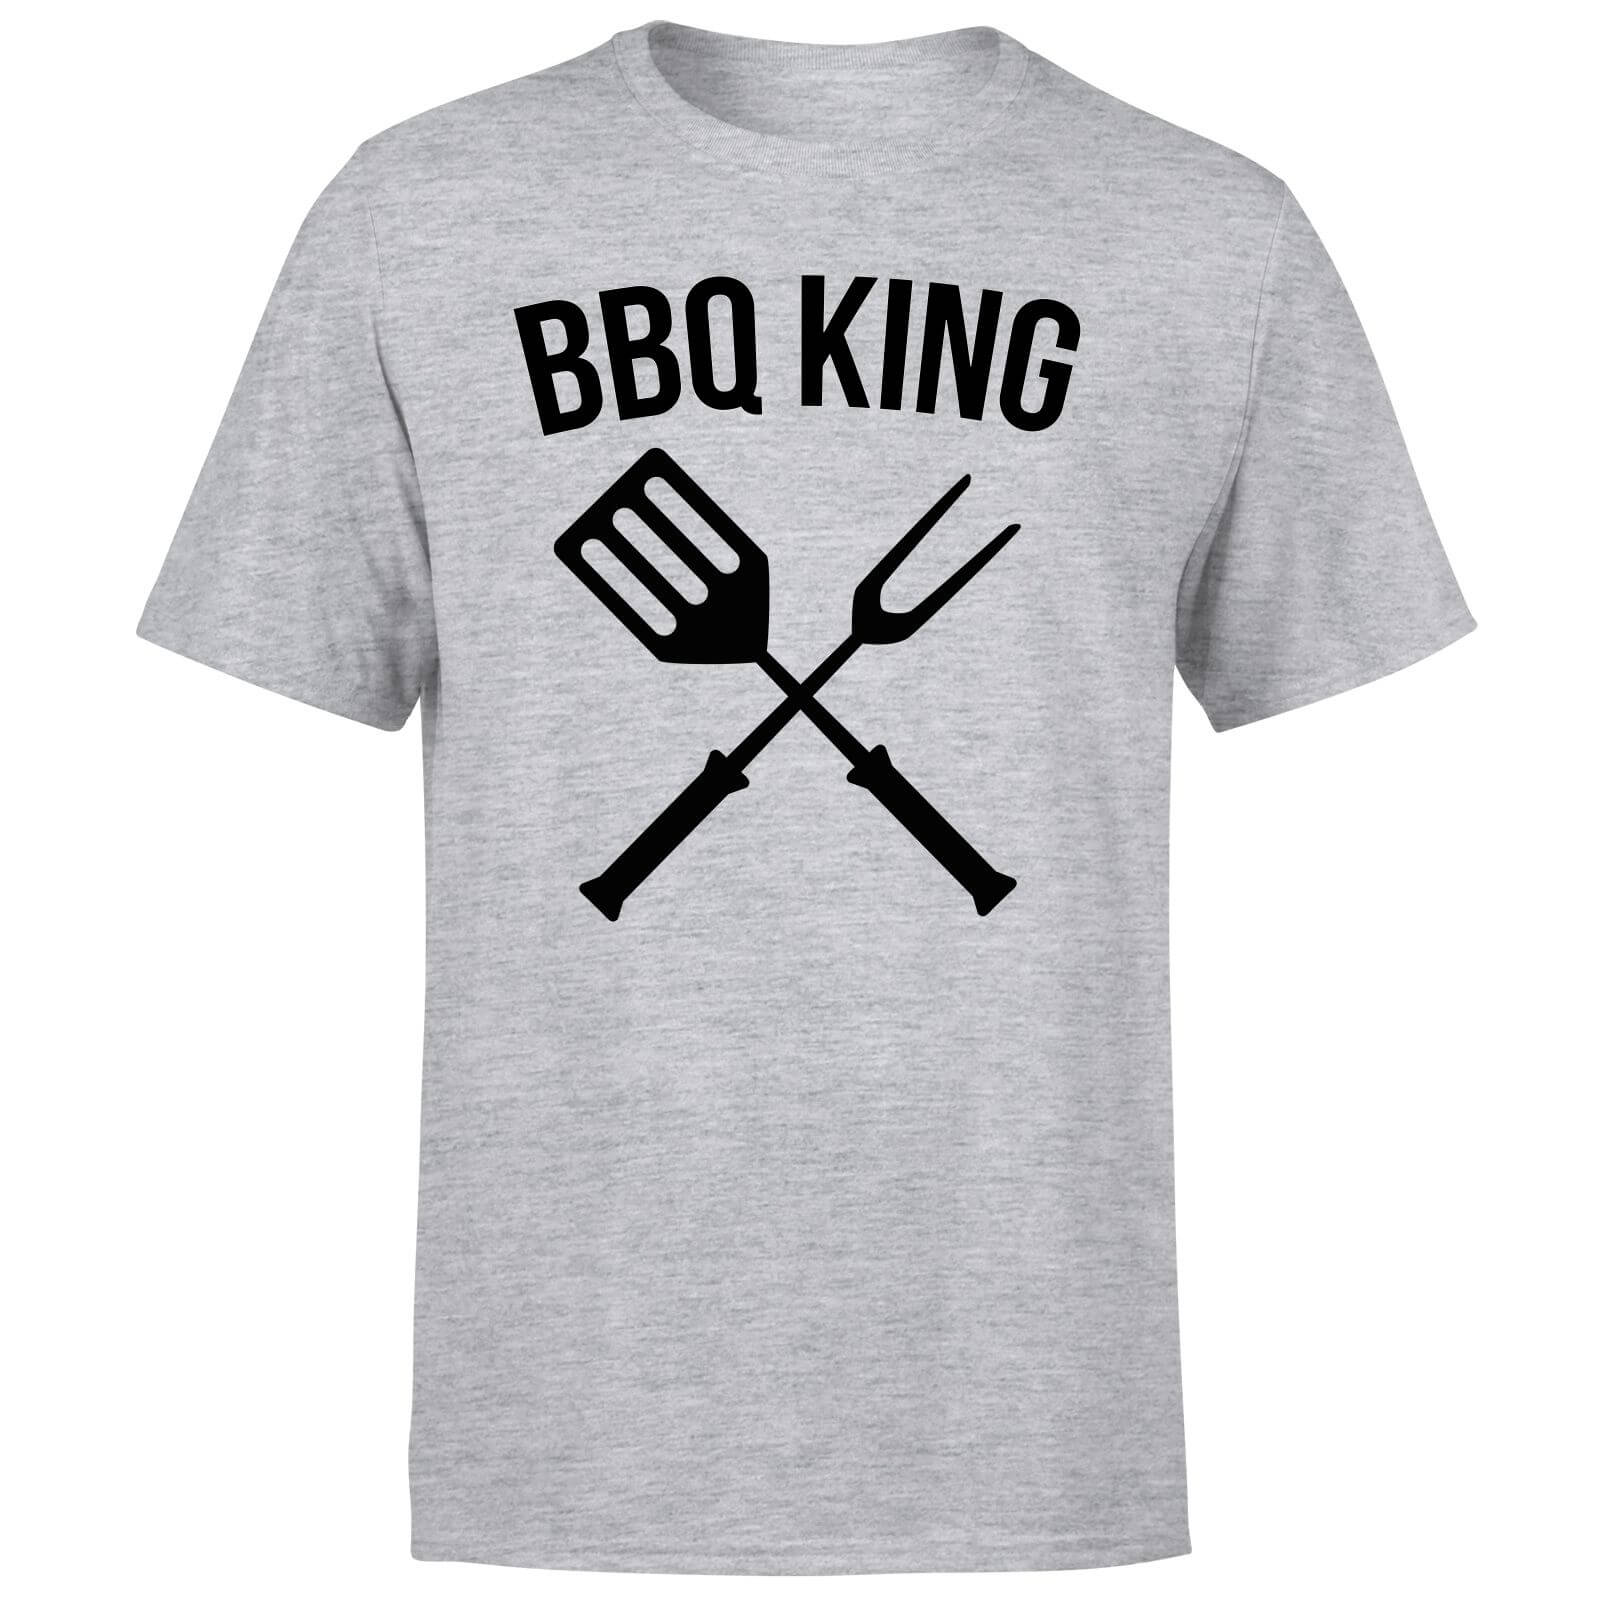 BBQ King T-Shirt - Grey